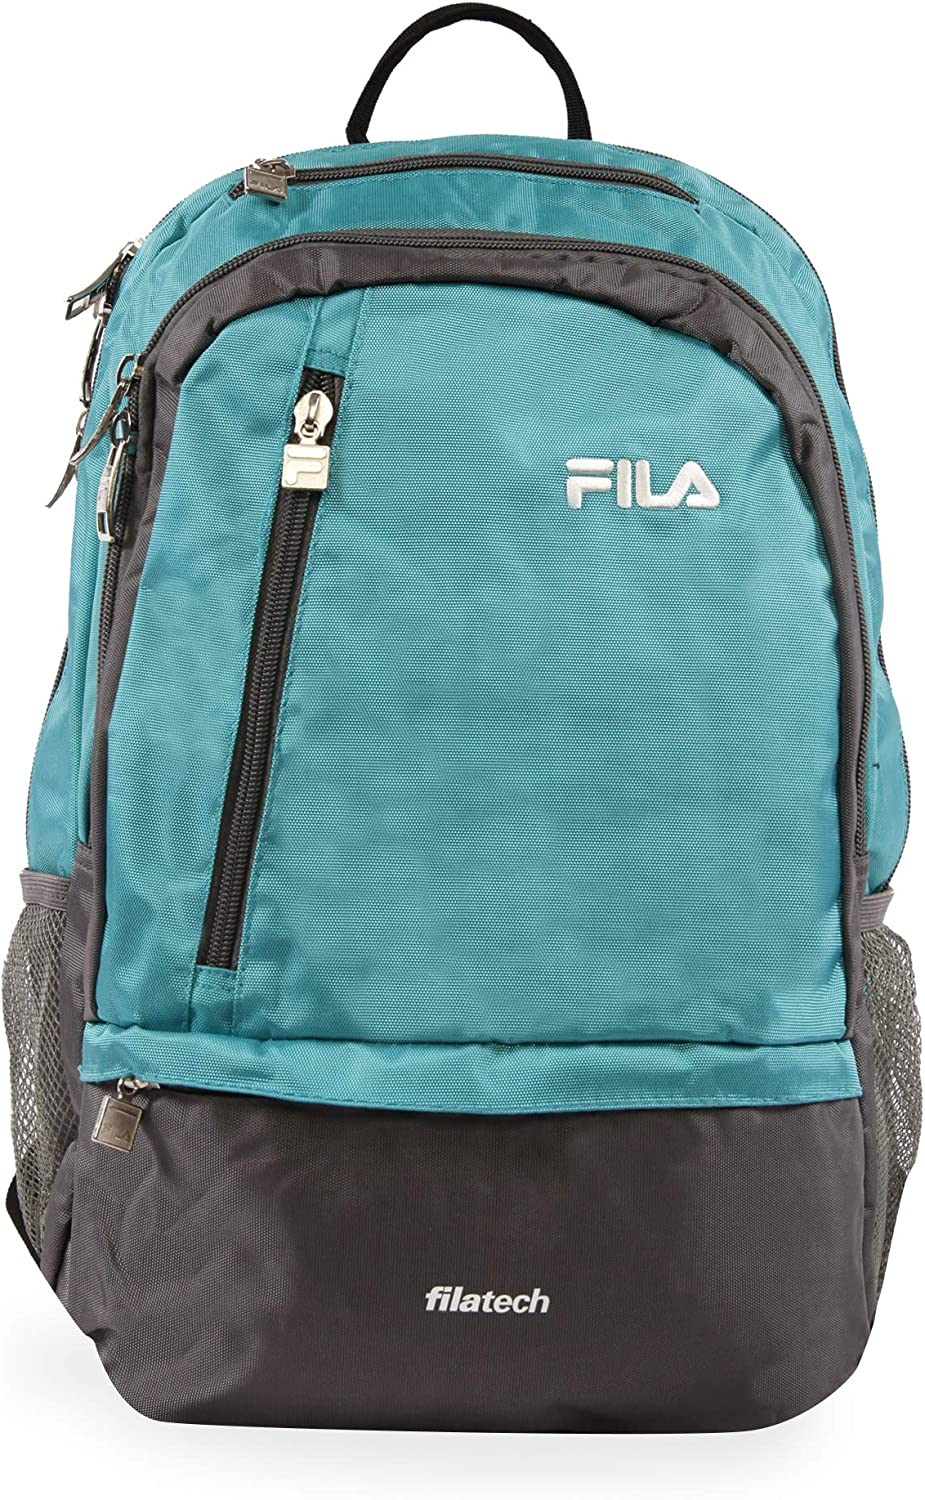 Fila Duel Tablet and Laptop Backpack, Teal, One Size